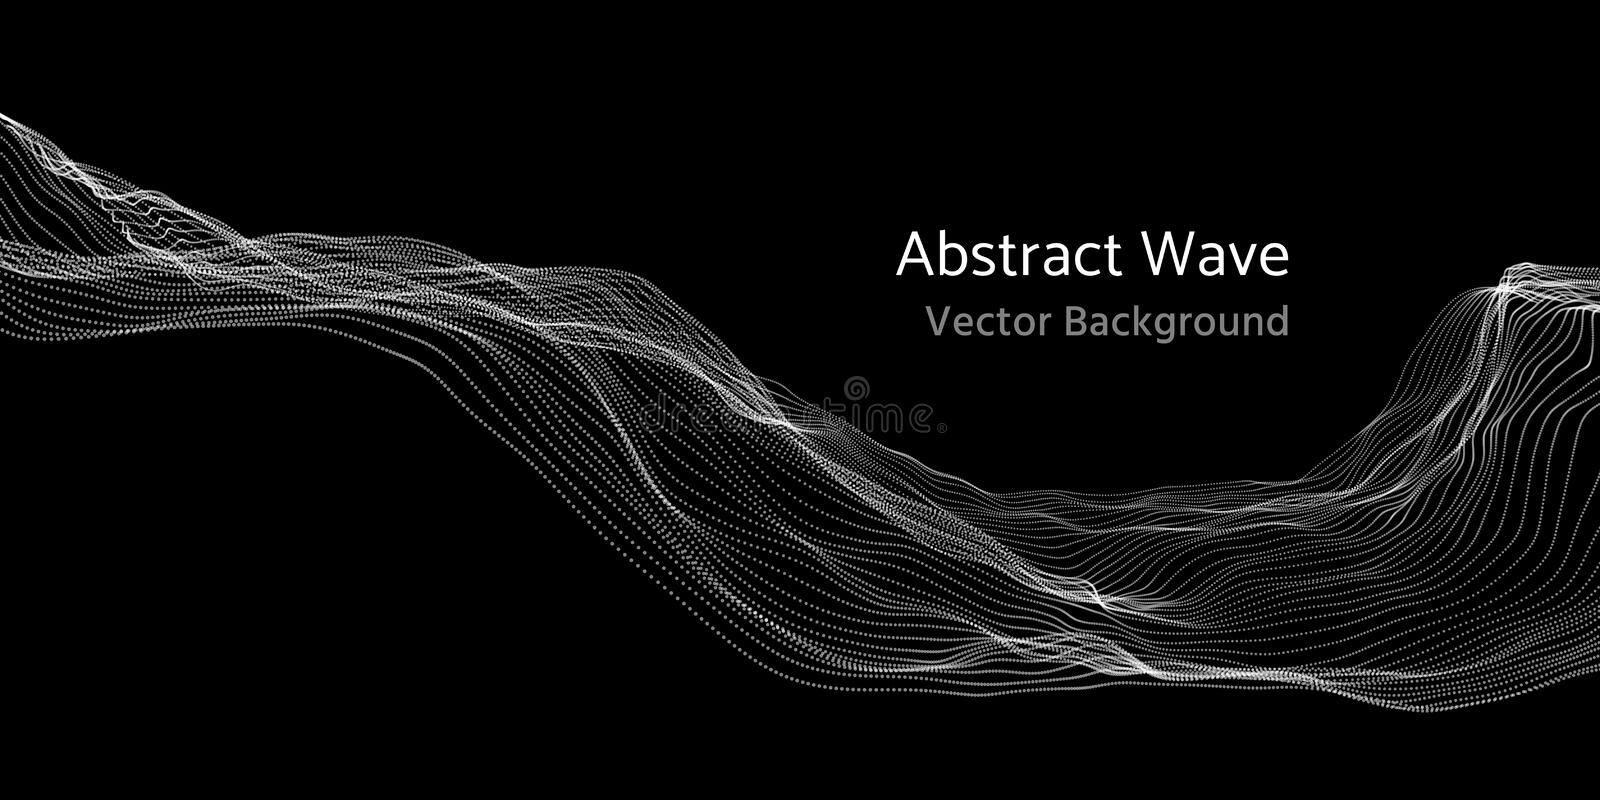 Mesh network 3d abstract wave and particles vector background royalty free illustration